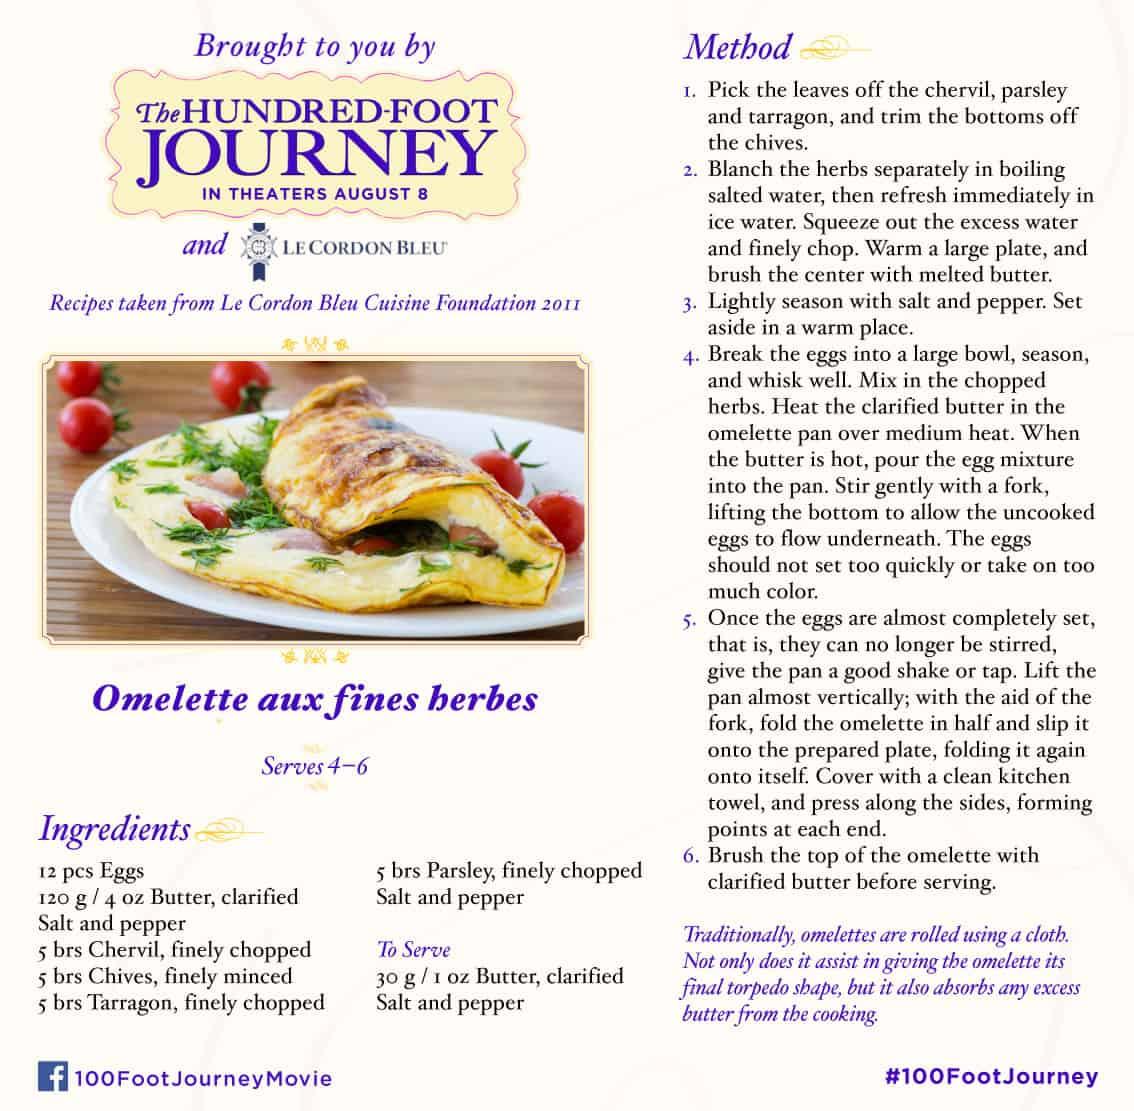 omelette aux fines herbes recipe, 100 Foot Journey Recipes